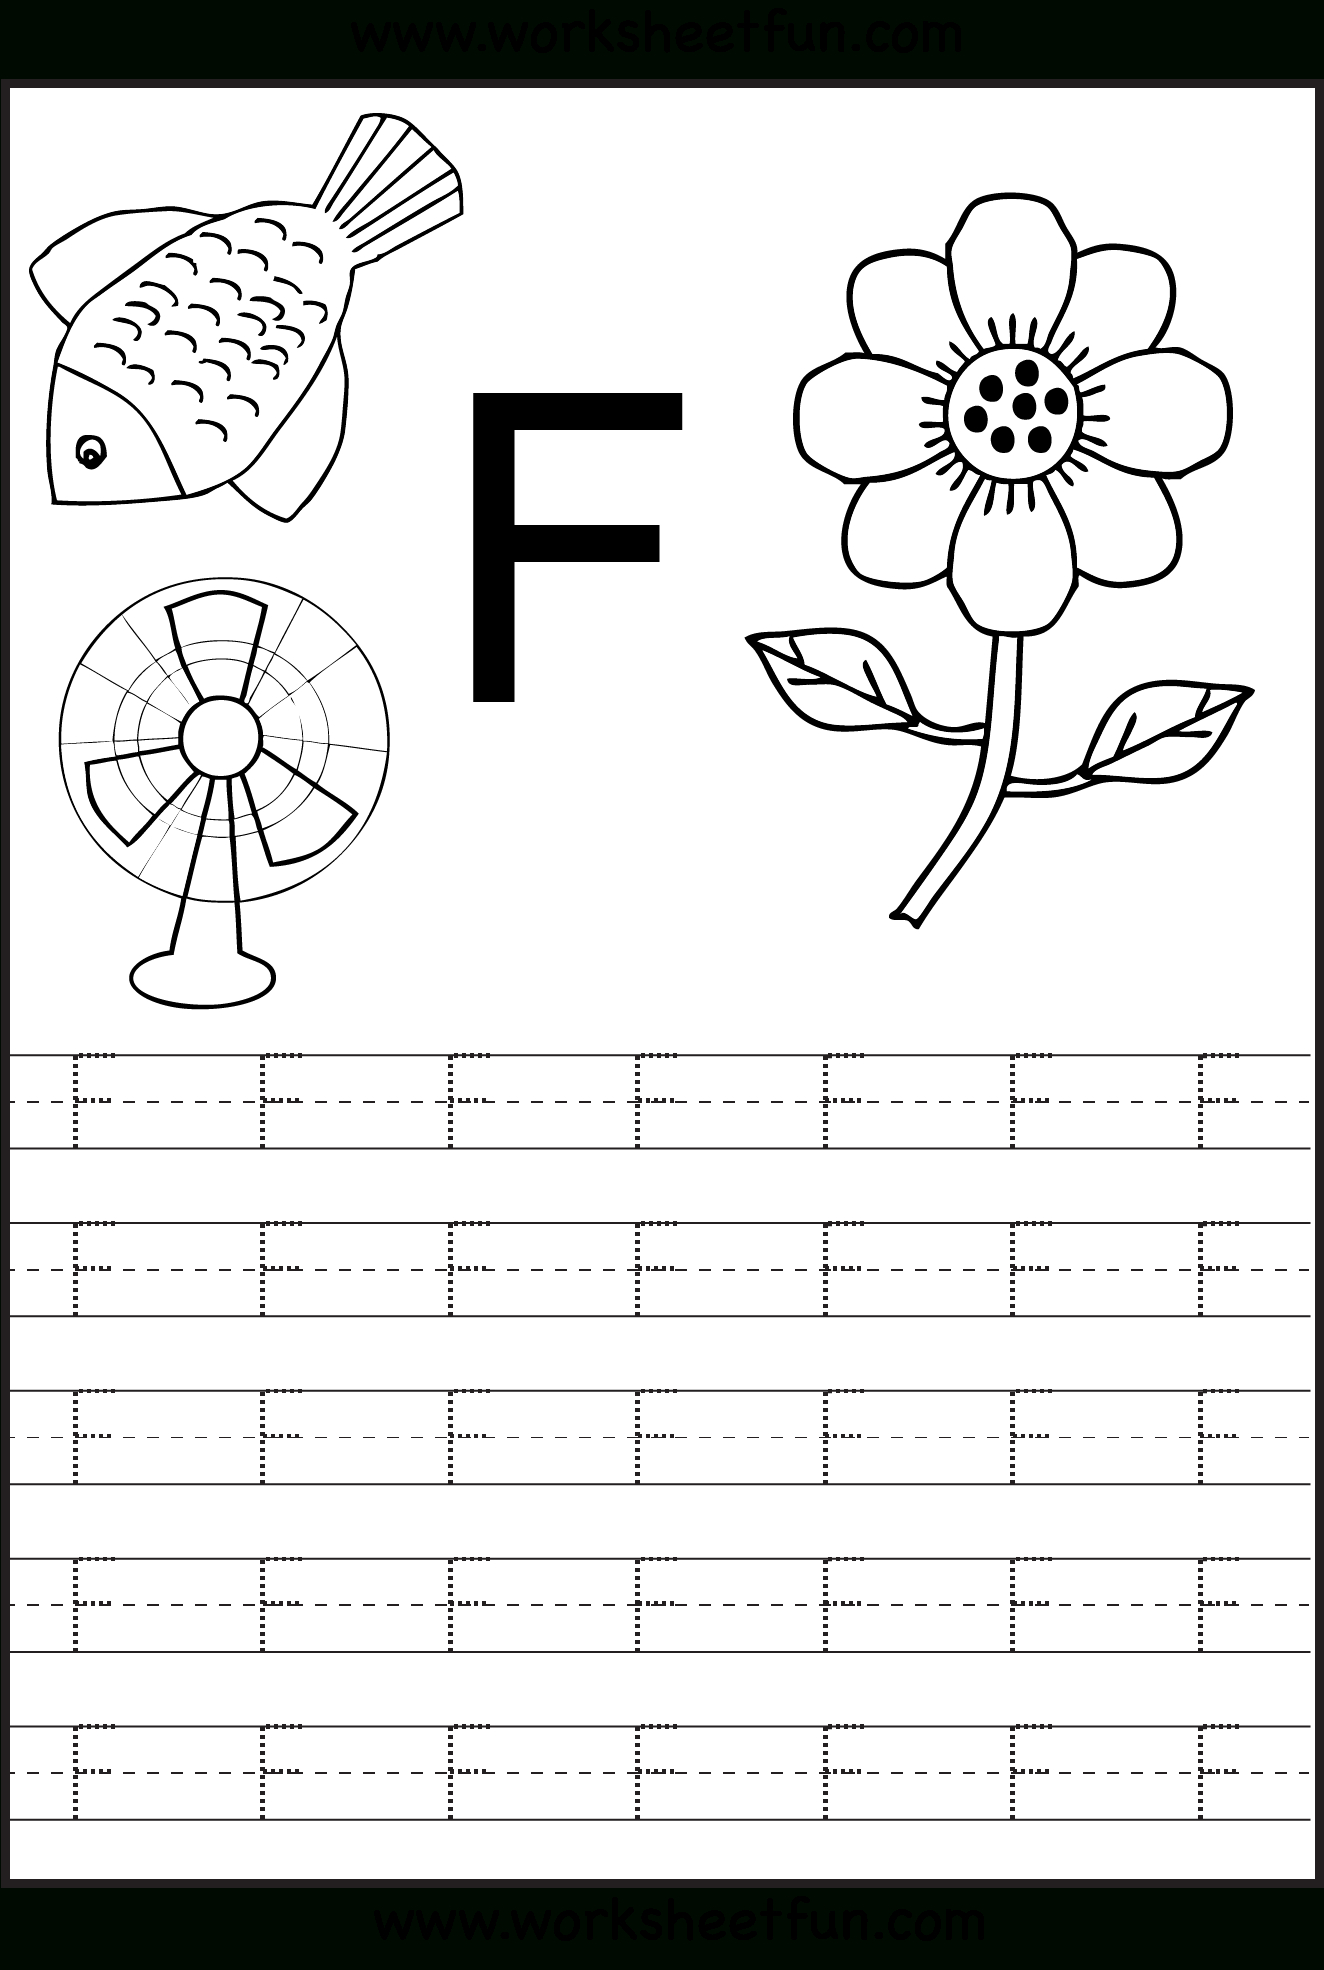 Letter F Worksheets | H3Dwallpapers - High Definition Free throughout Letter F Worksheets For Grade 1